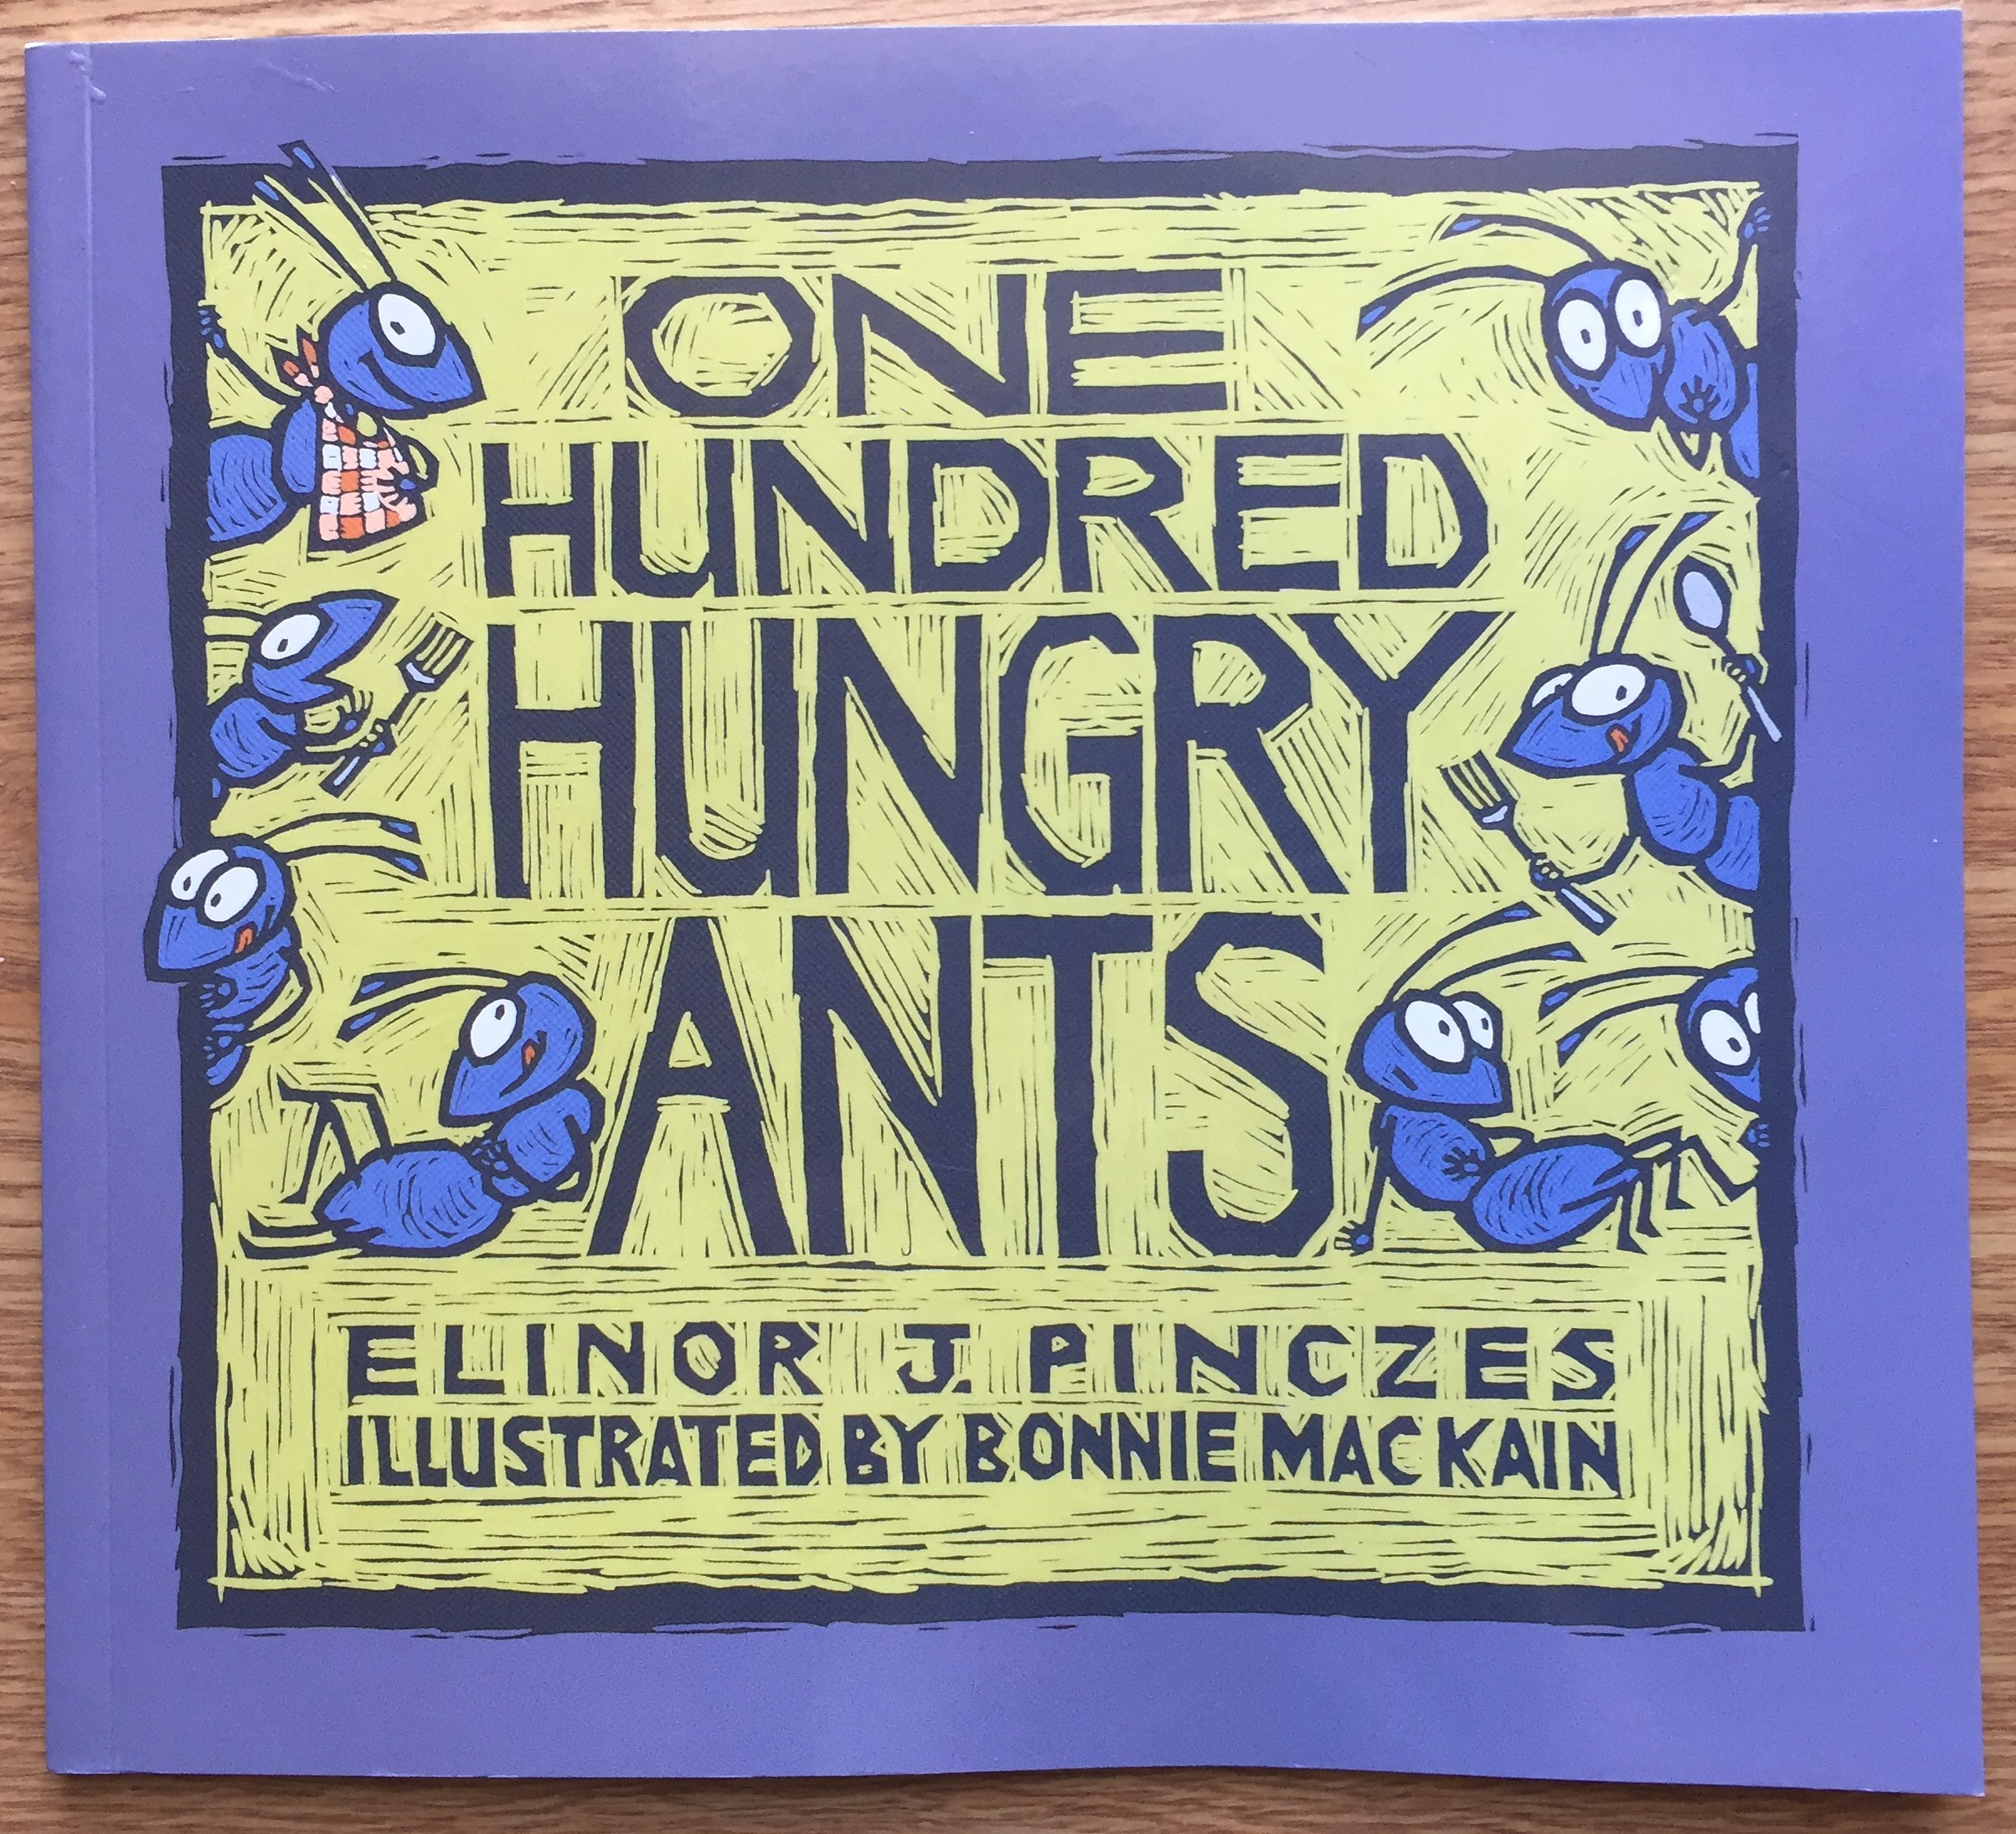 100 hungry ants cover